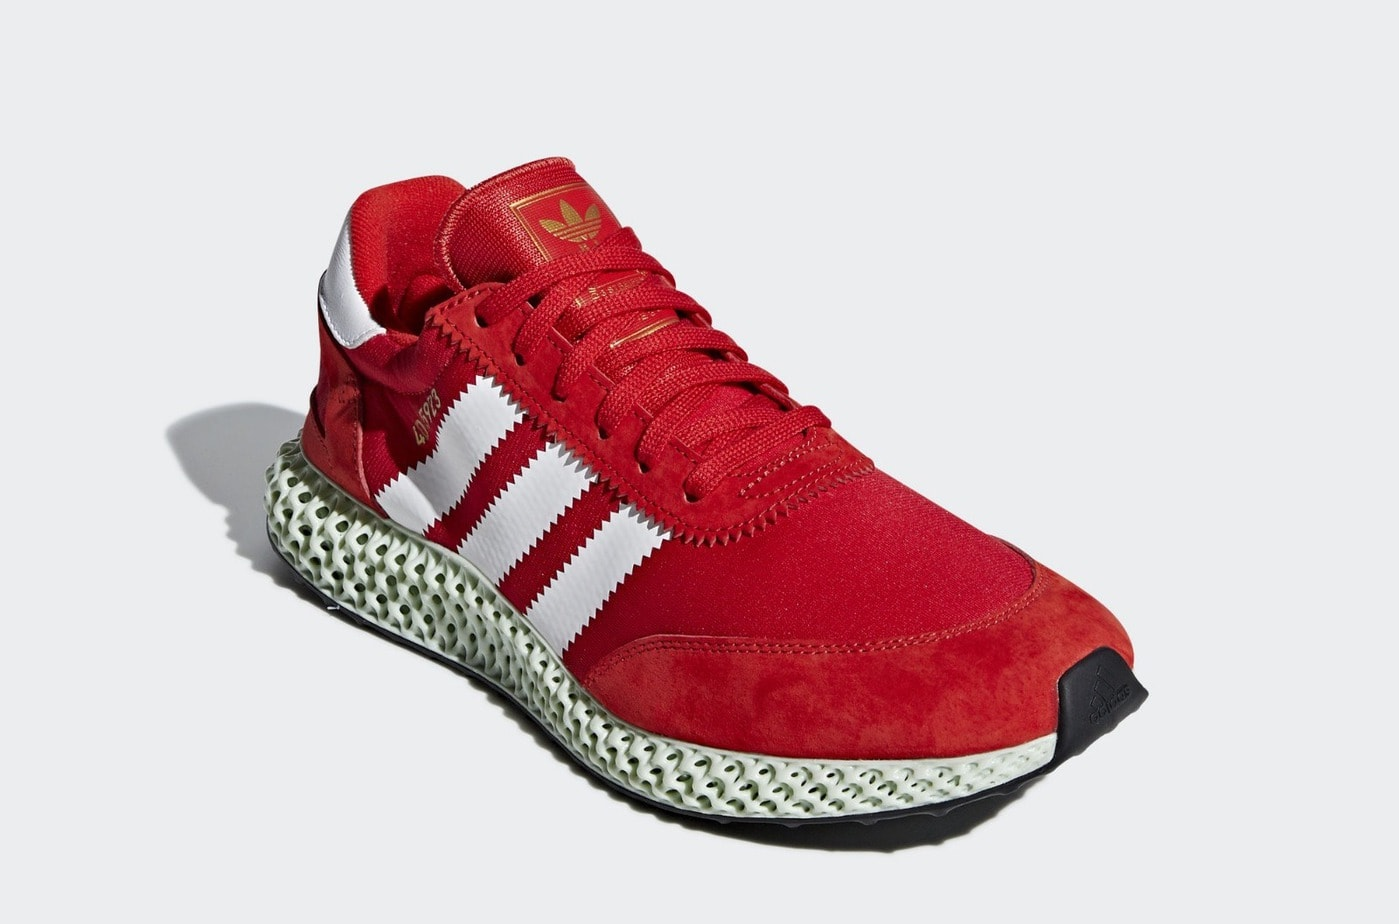 official photos eada5 9600c Now, the 4D-5923 mix has been loaded onto the adidas website, though  without any sign of release.